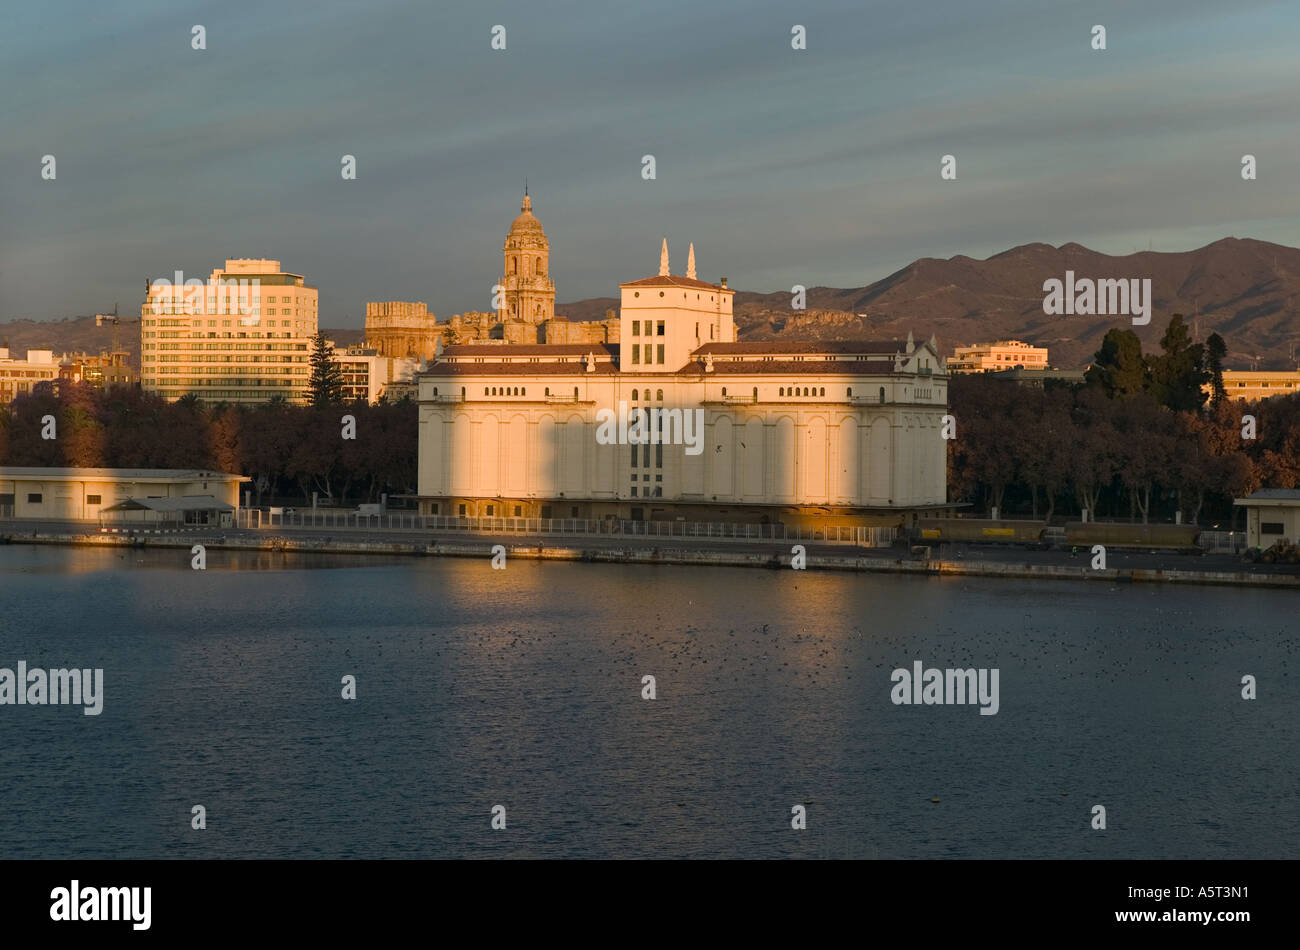 The grain silo, now demolished, which was a landmark in Malaga Harbour - Stock Image